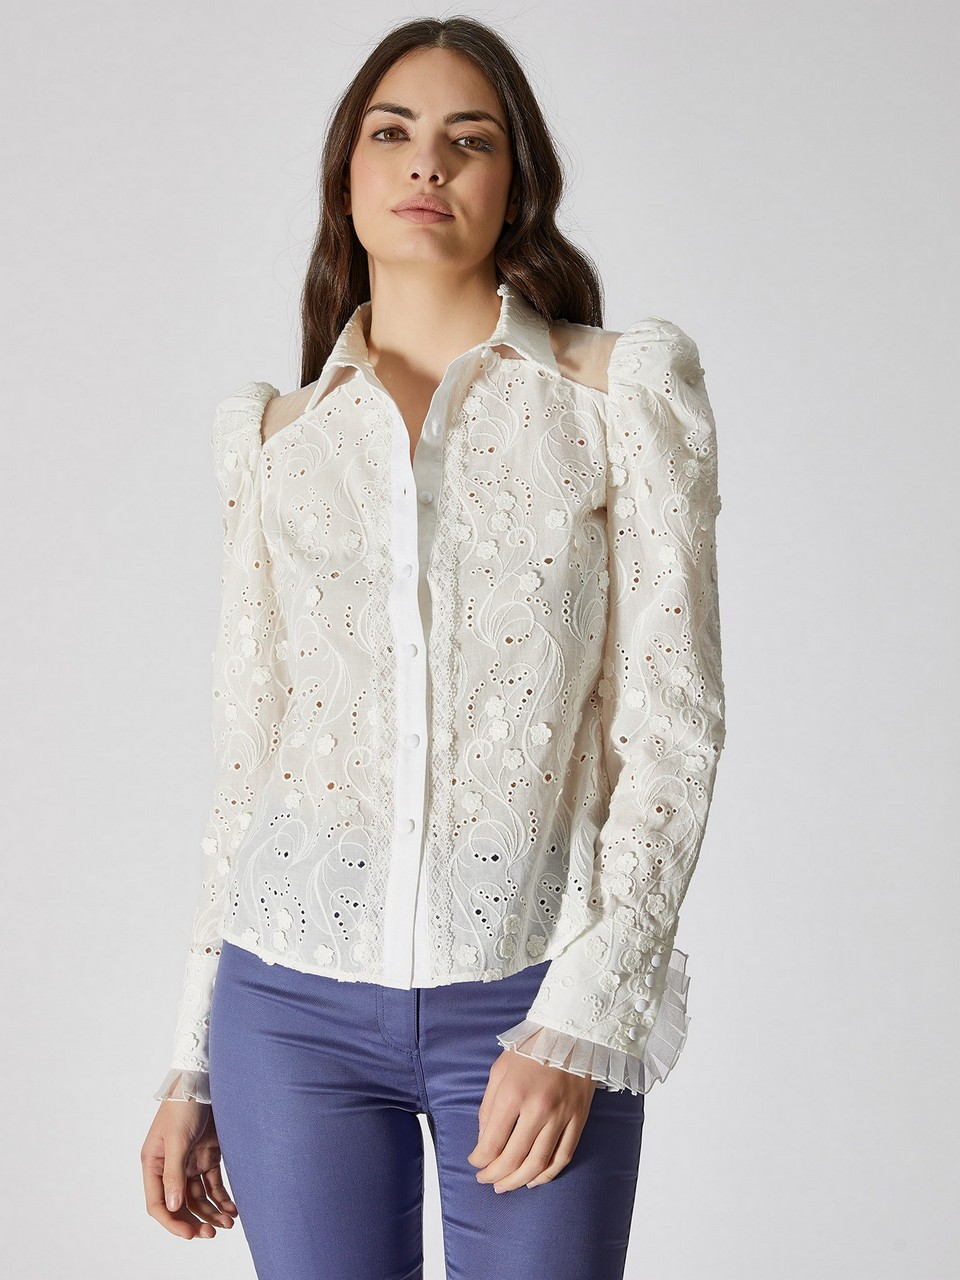 Chiffon Shoulder Detailed Lace Cotton Shirt